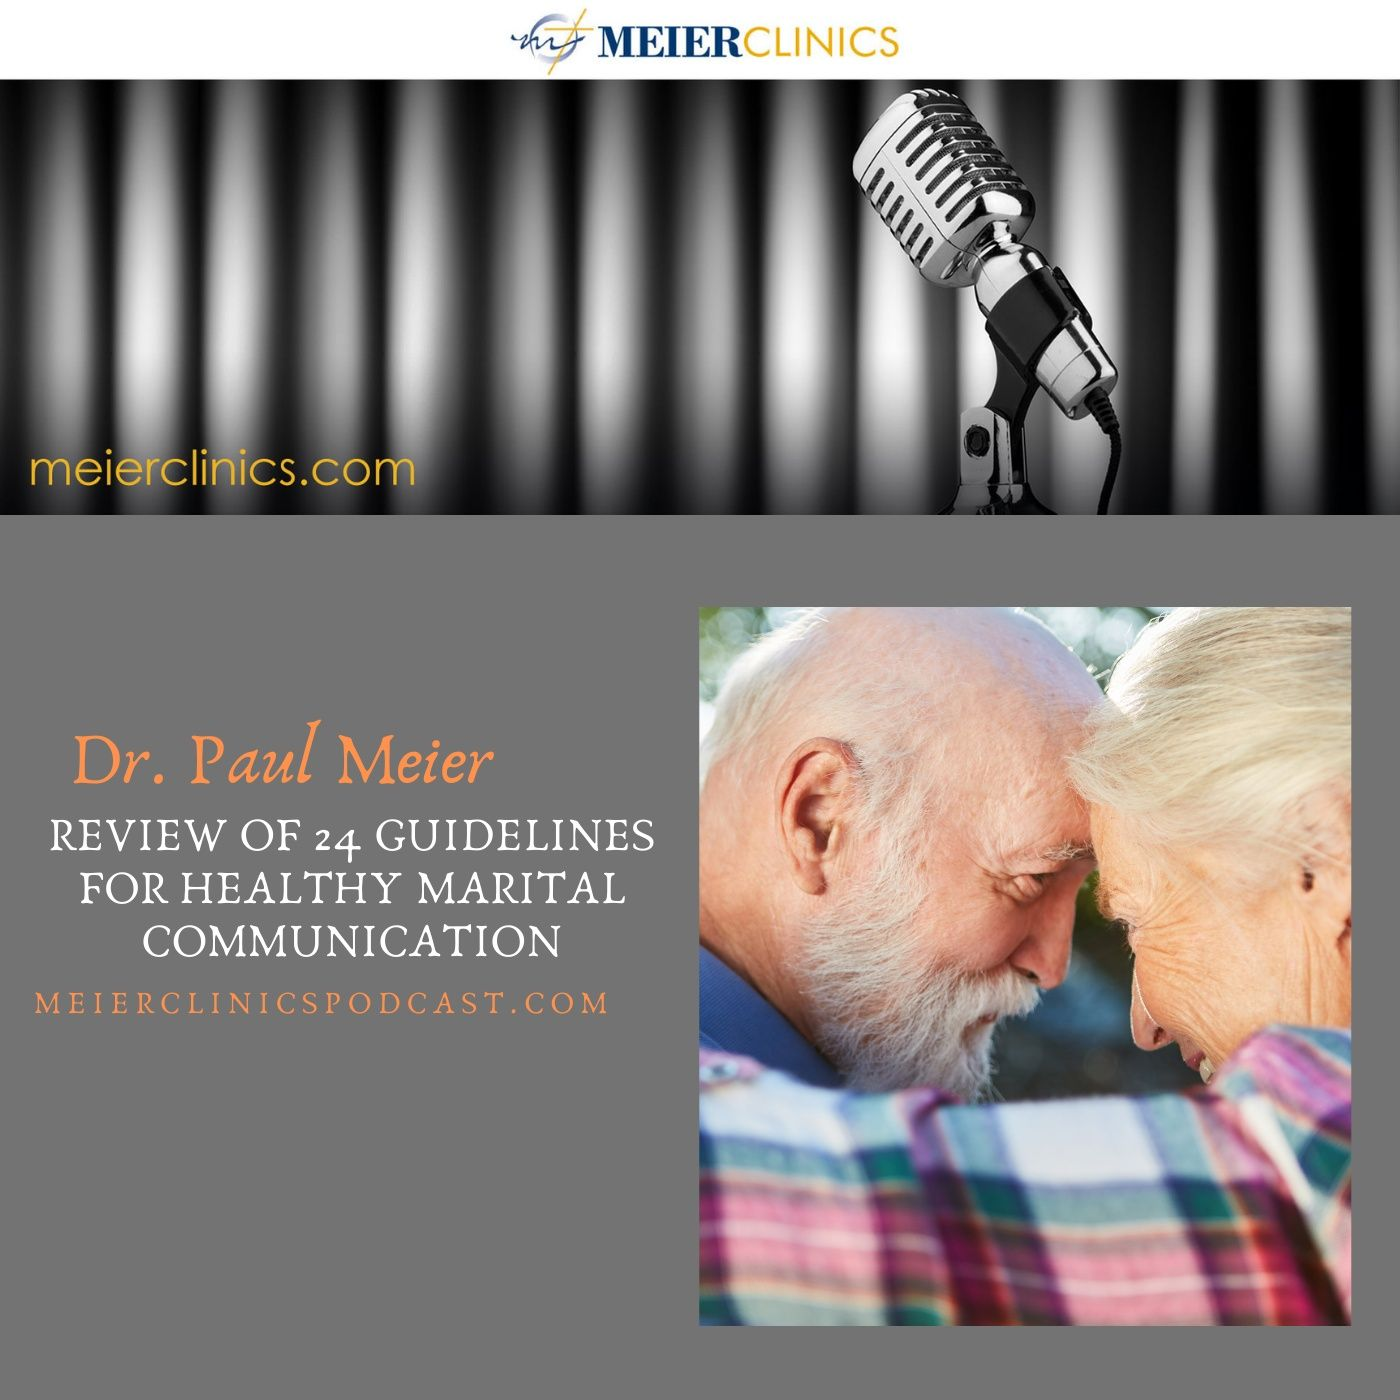 Review of 24 Guidelines for Healthy Marital Communication